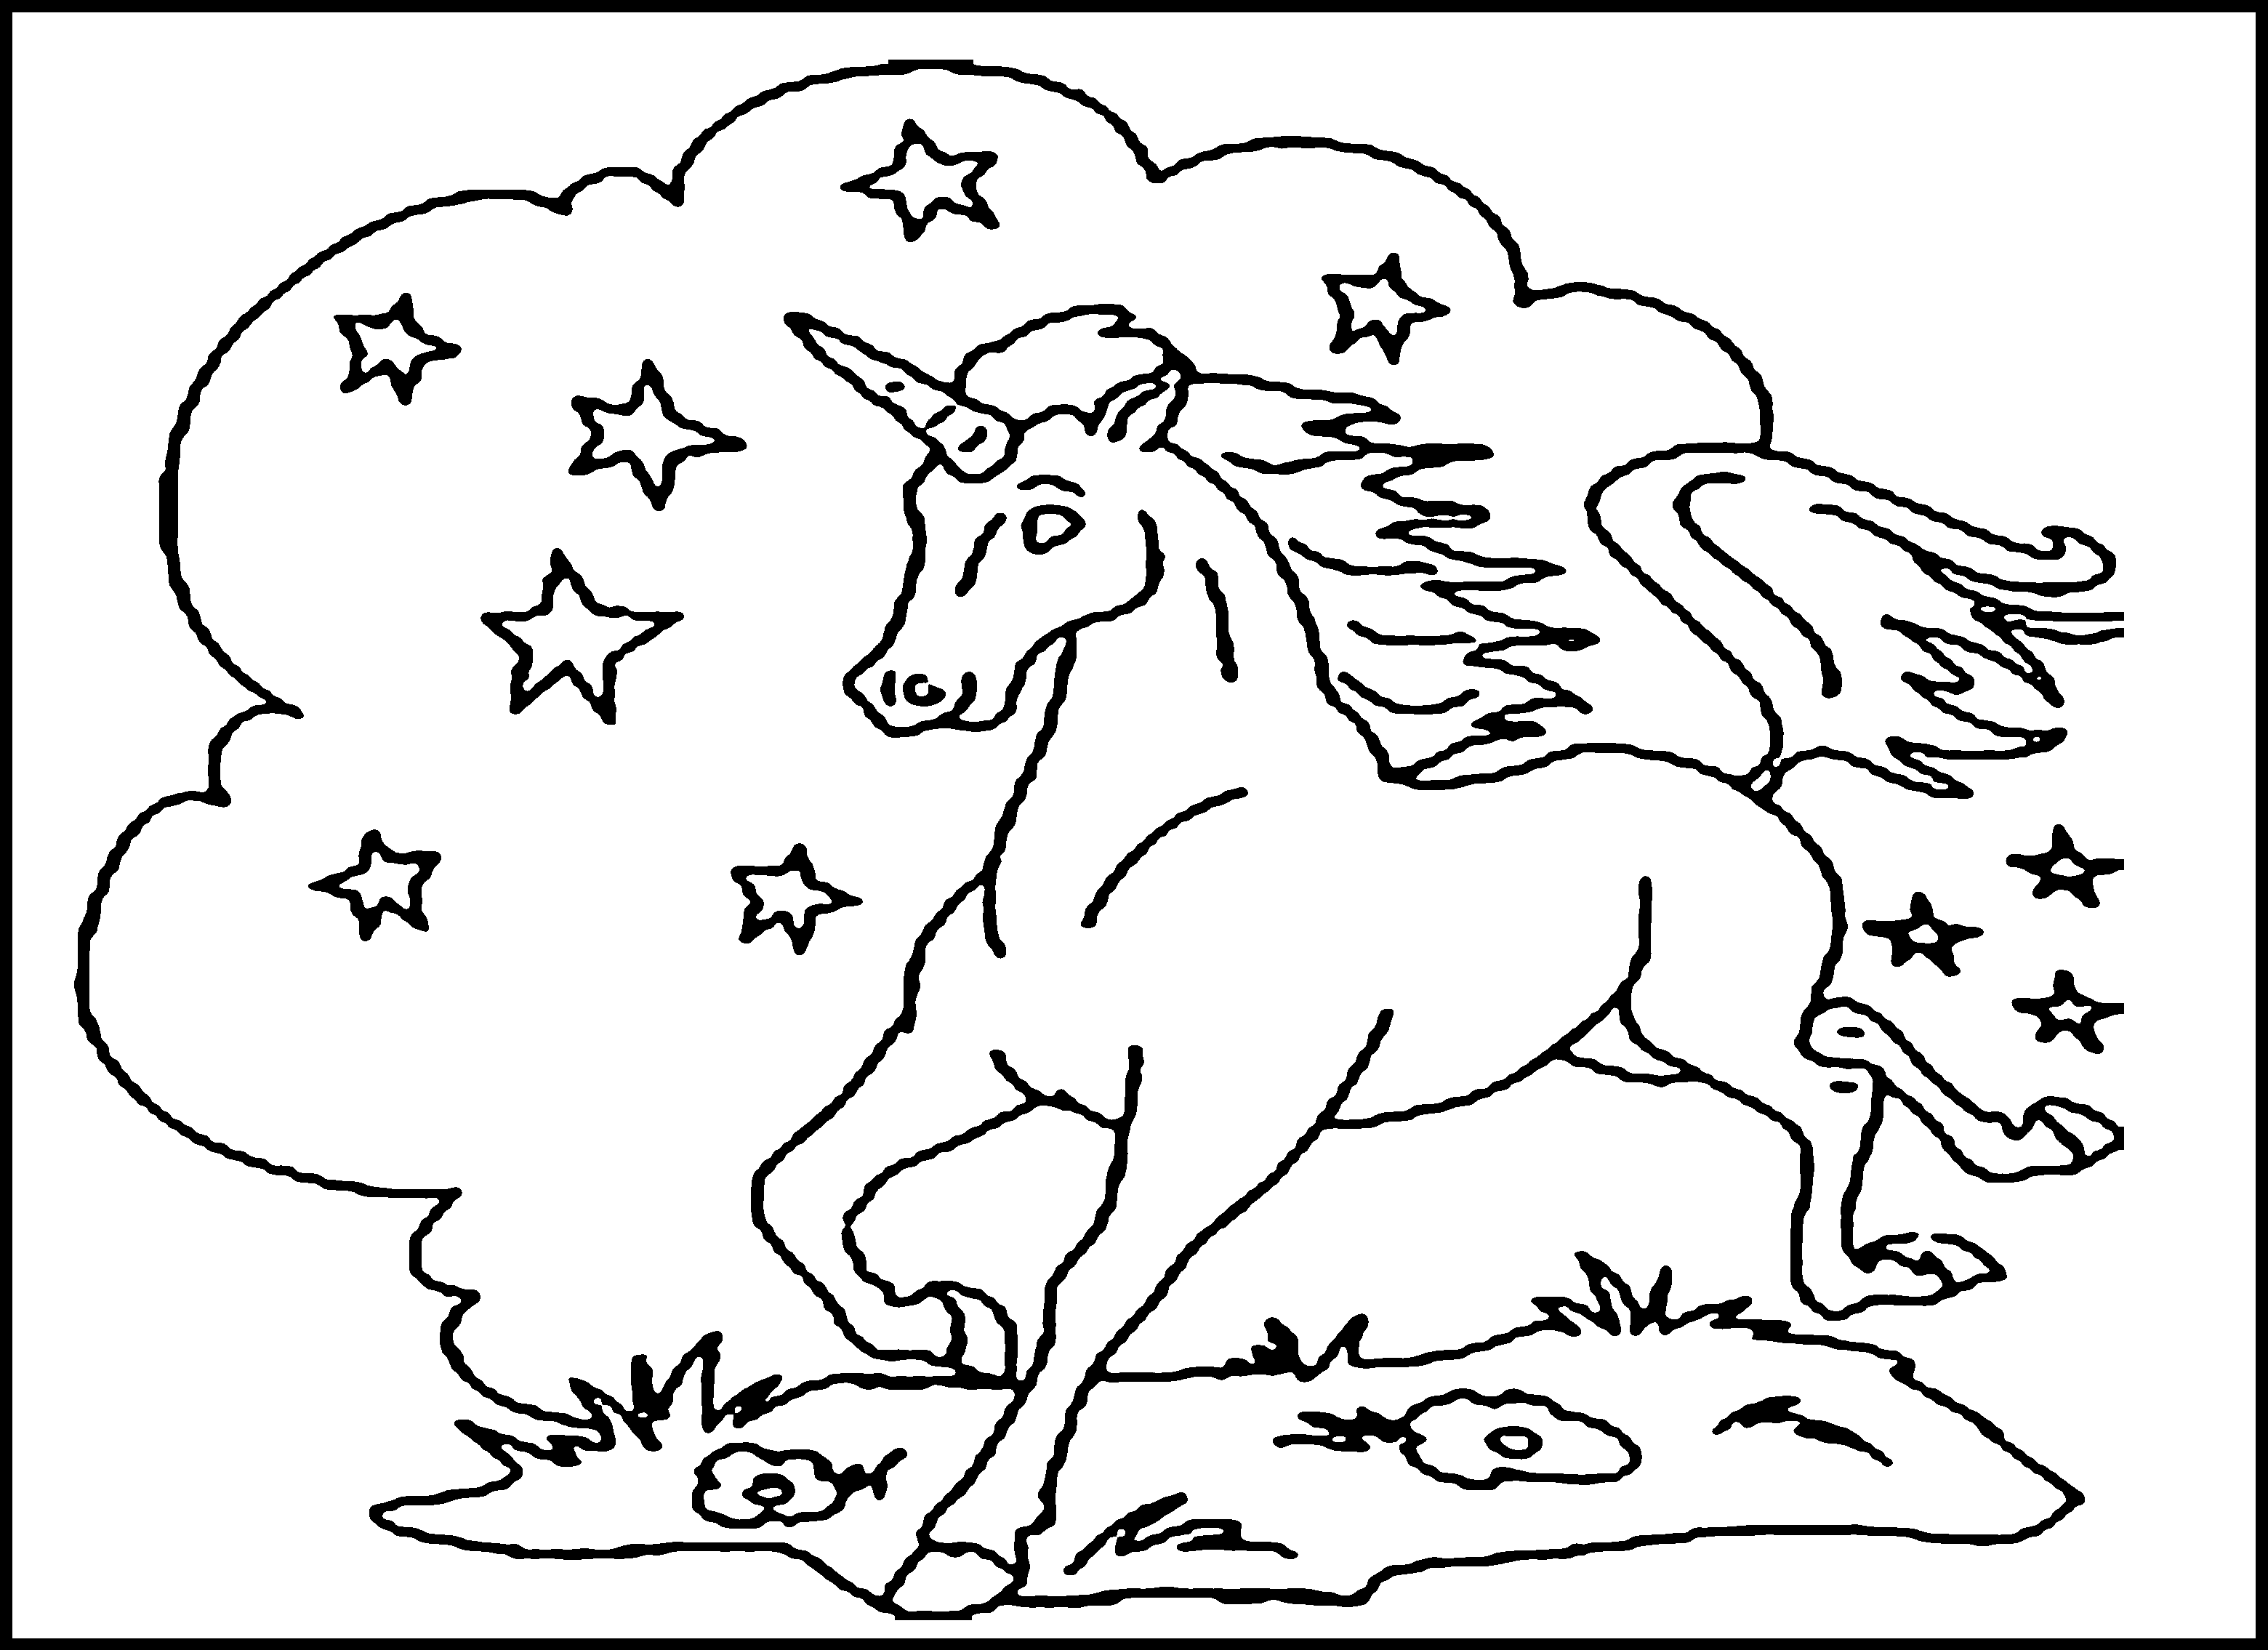 unicorn printable coloring pages - Coloring Page Printable